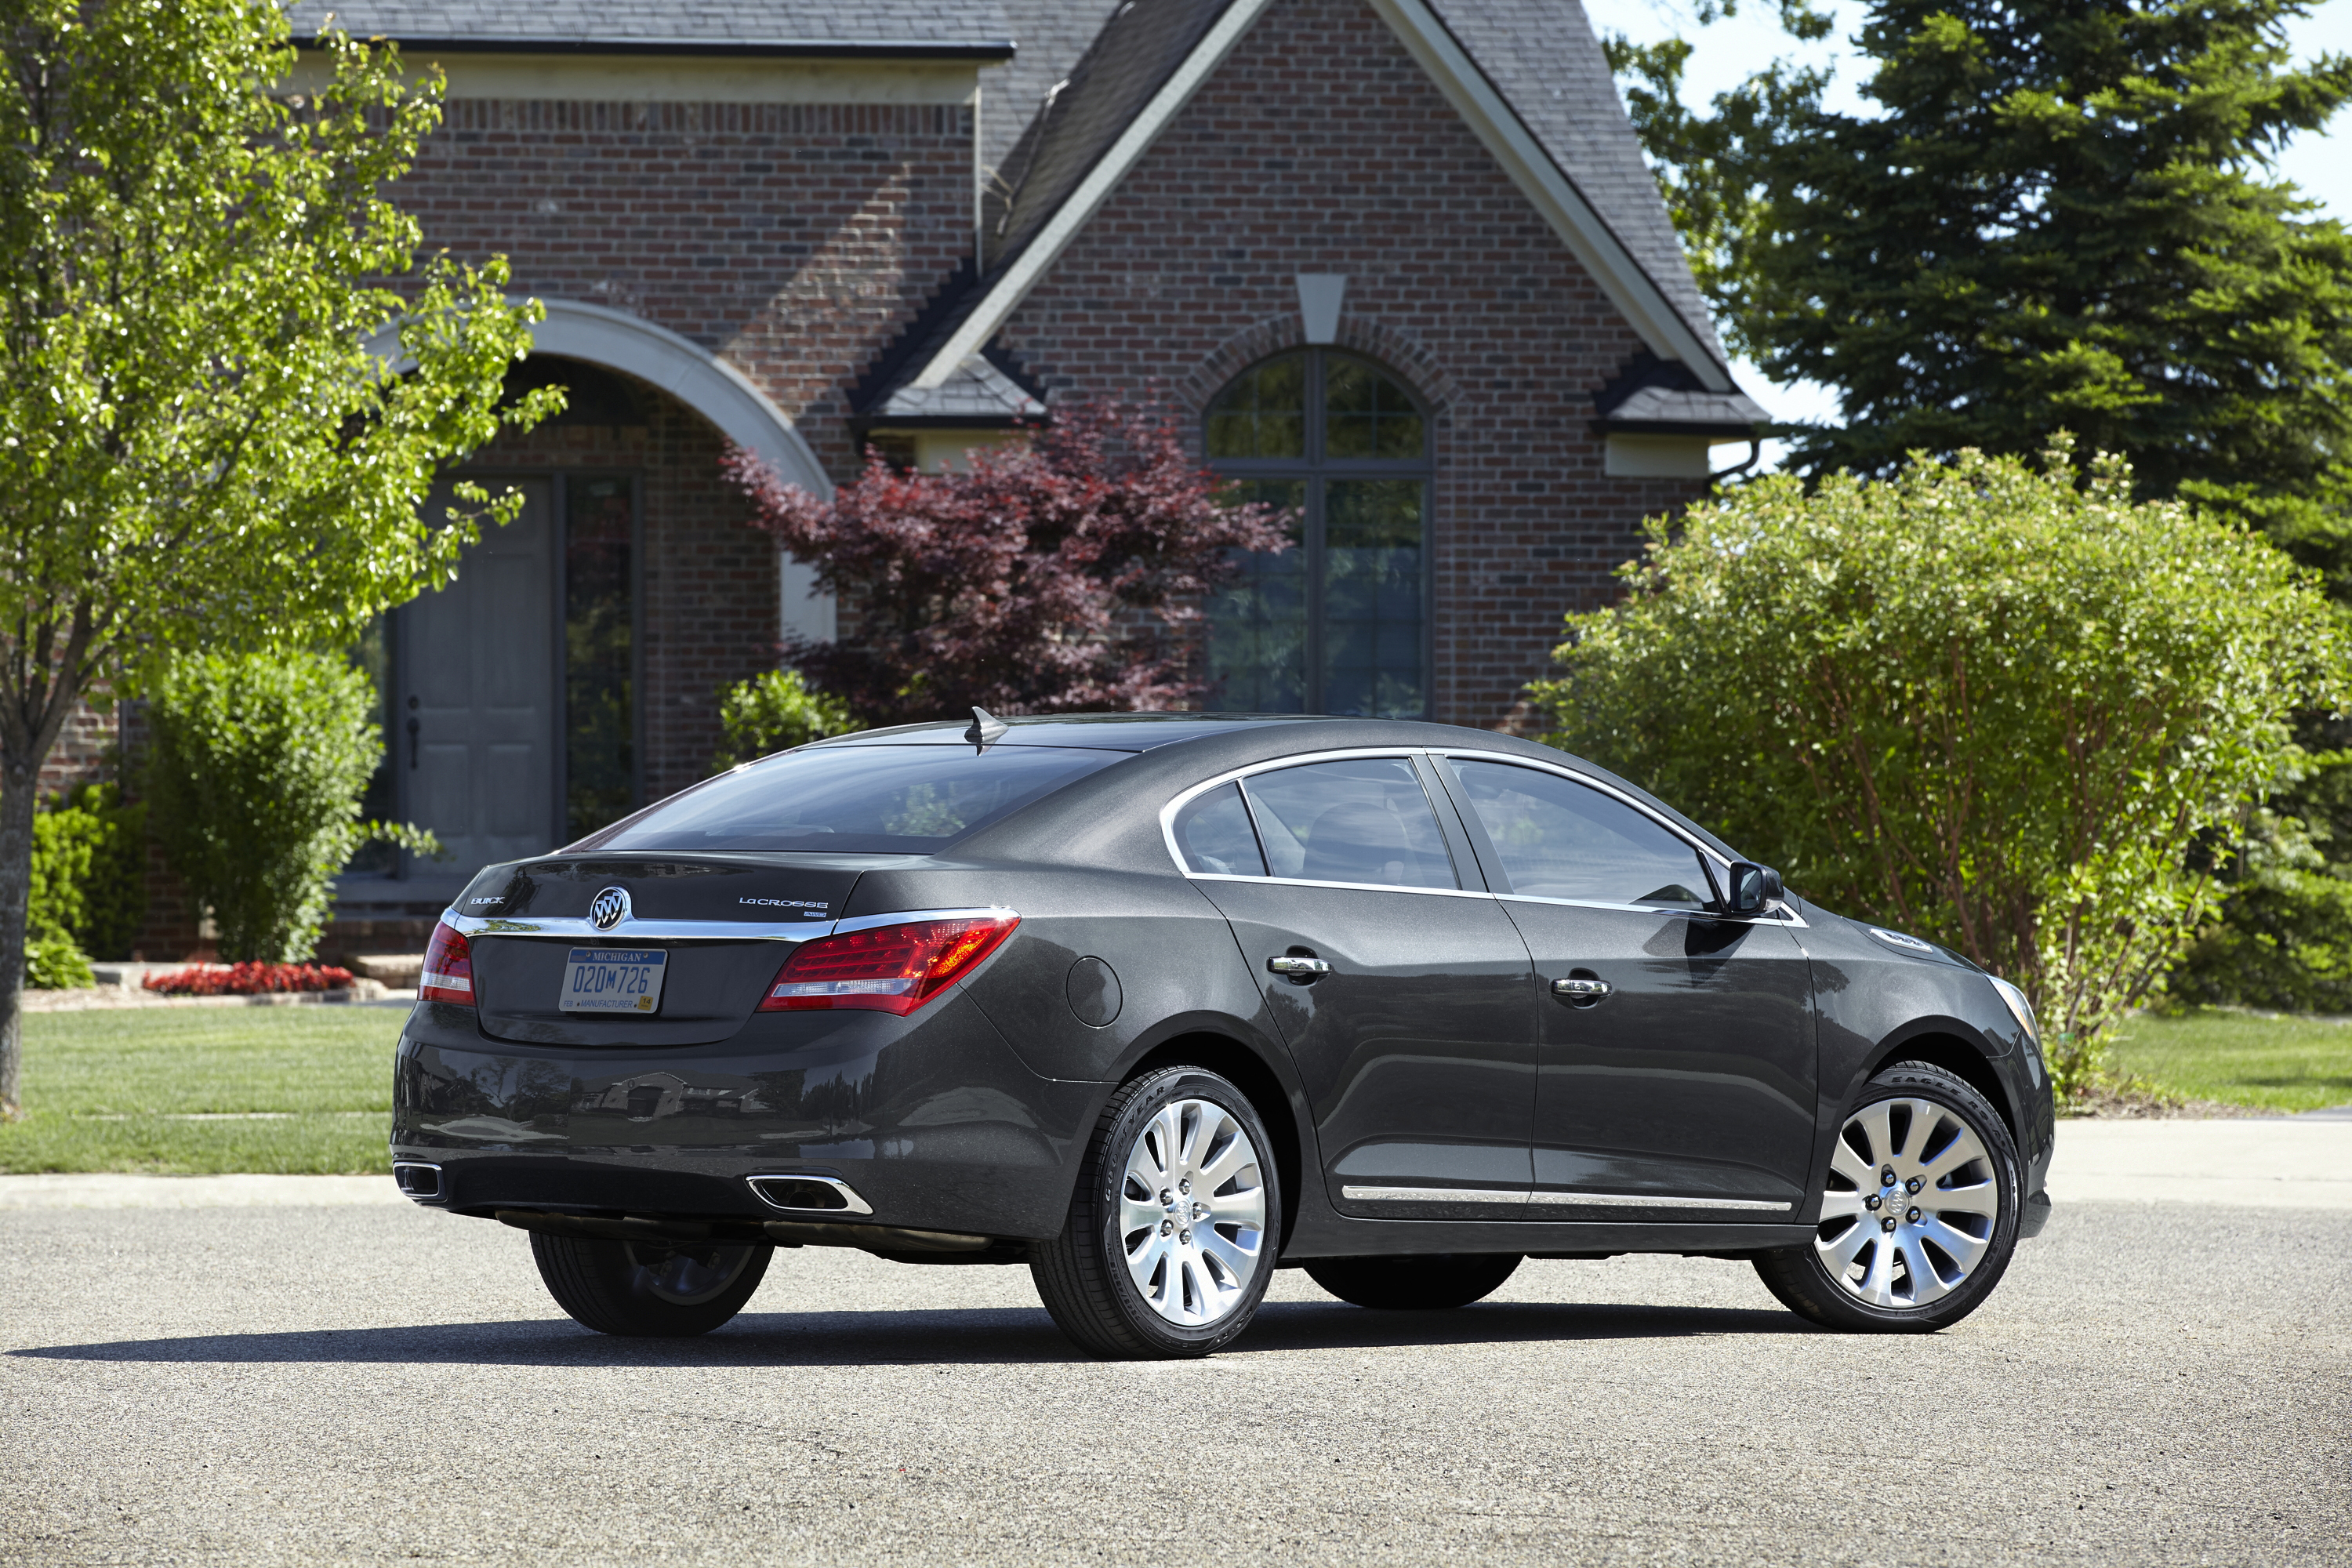 buick lacrosse decatur dealer mattoon jackson tuscola and serving